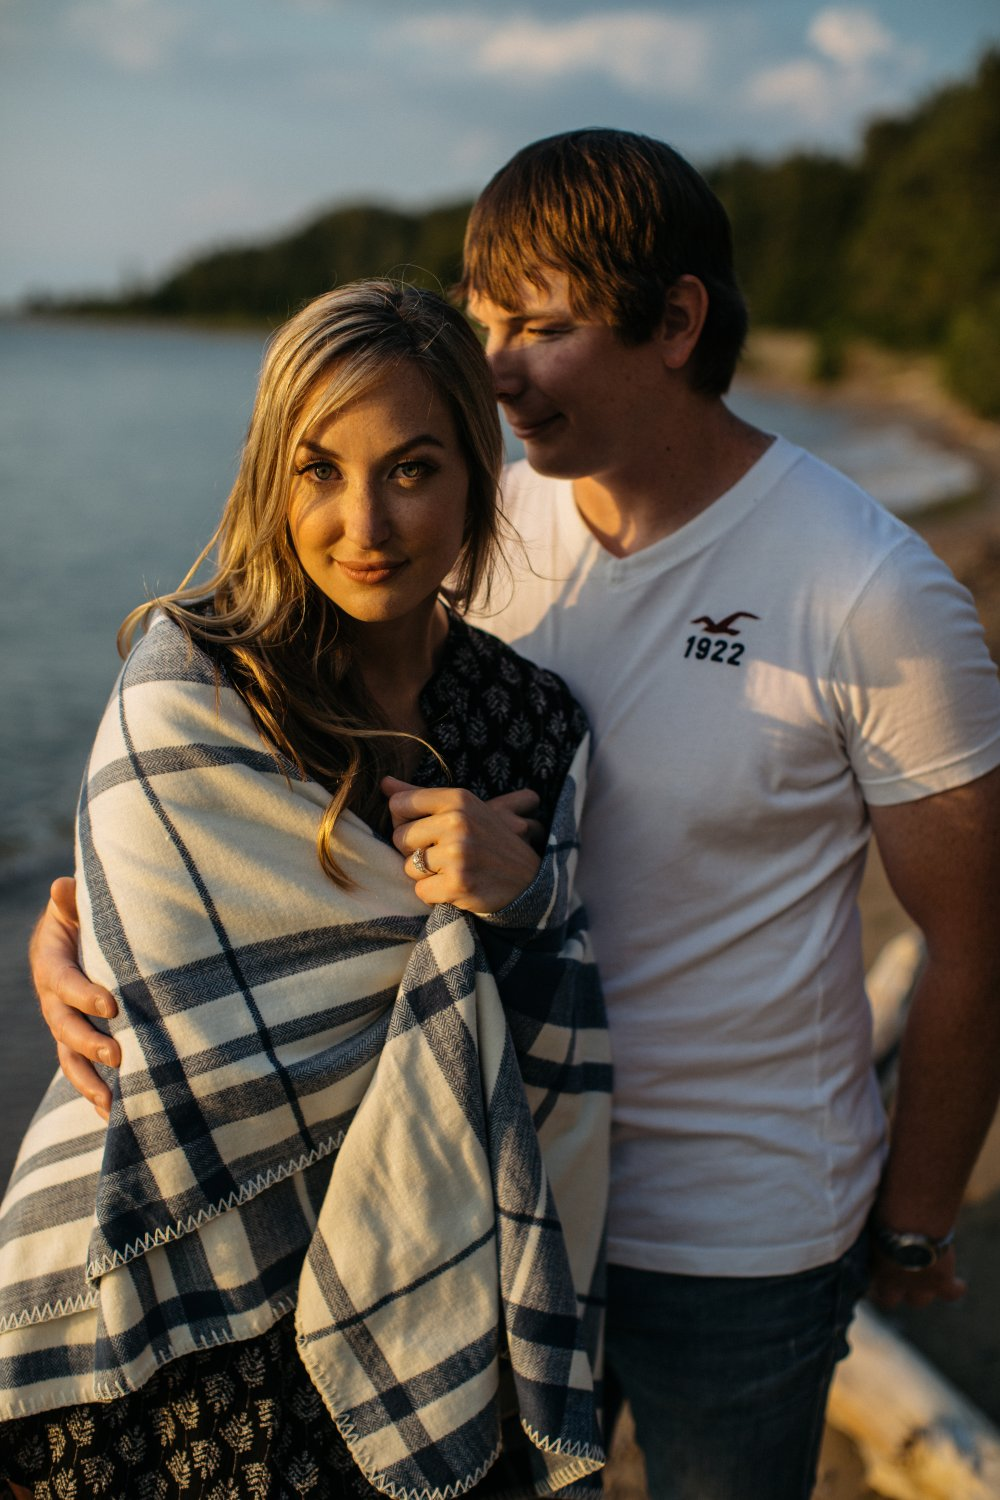 JF Hannigan Photography Engagement Session: Kassandra and Matt: Sunny Saugeen Shores 18